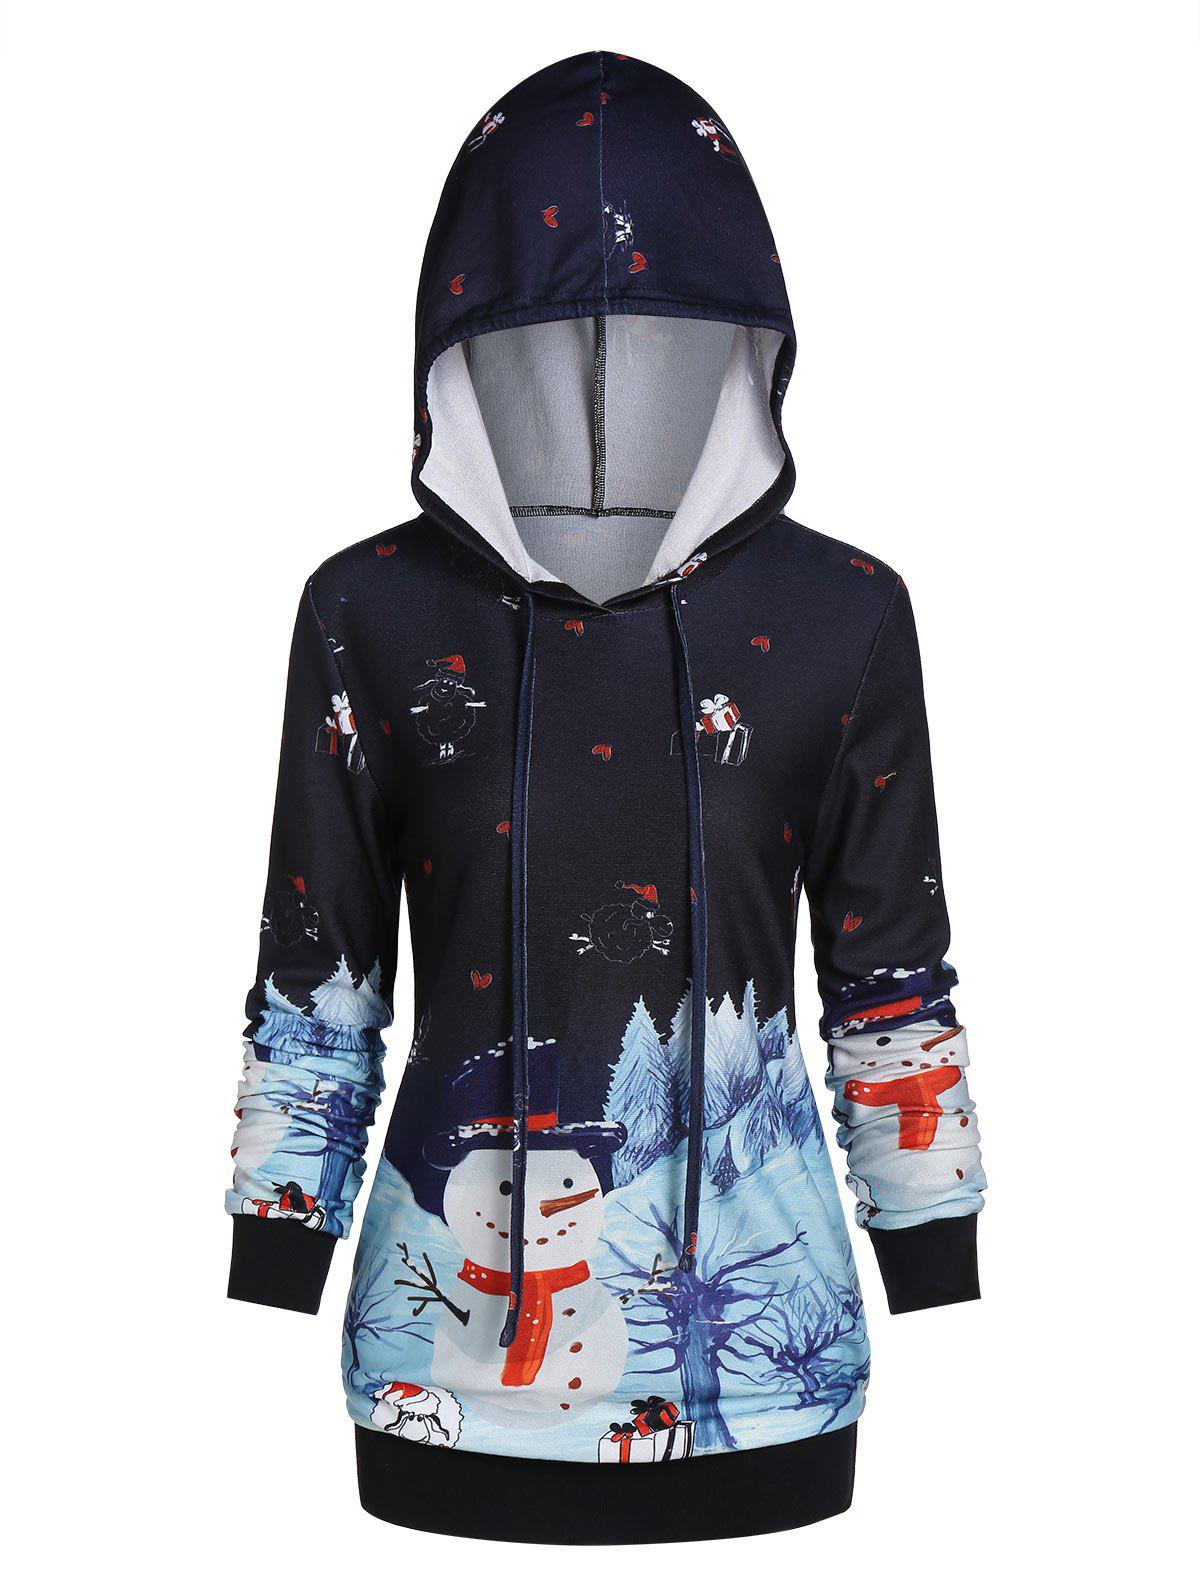 Christmas Snowman Printed Pullover Hoodie - multicolor A L